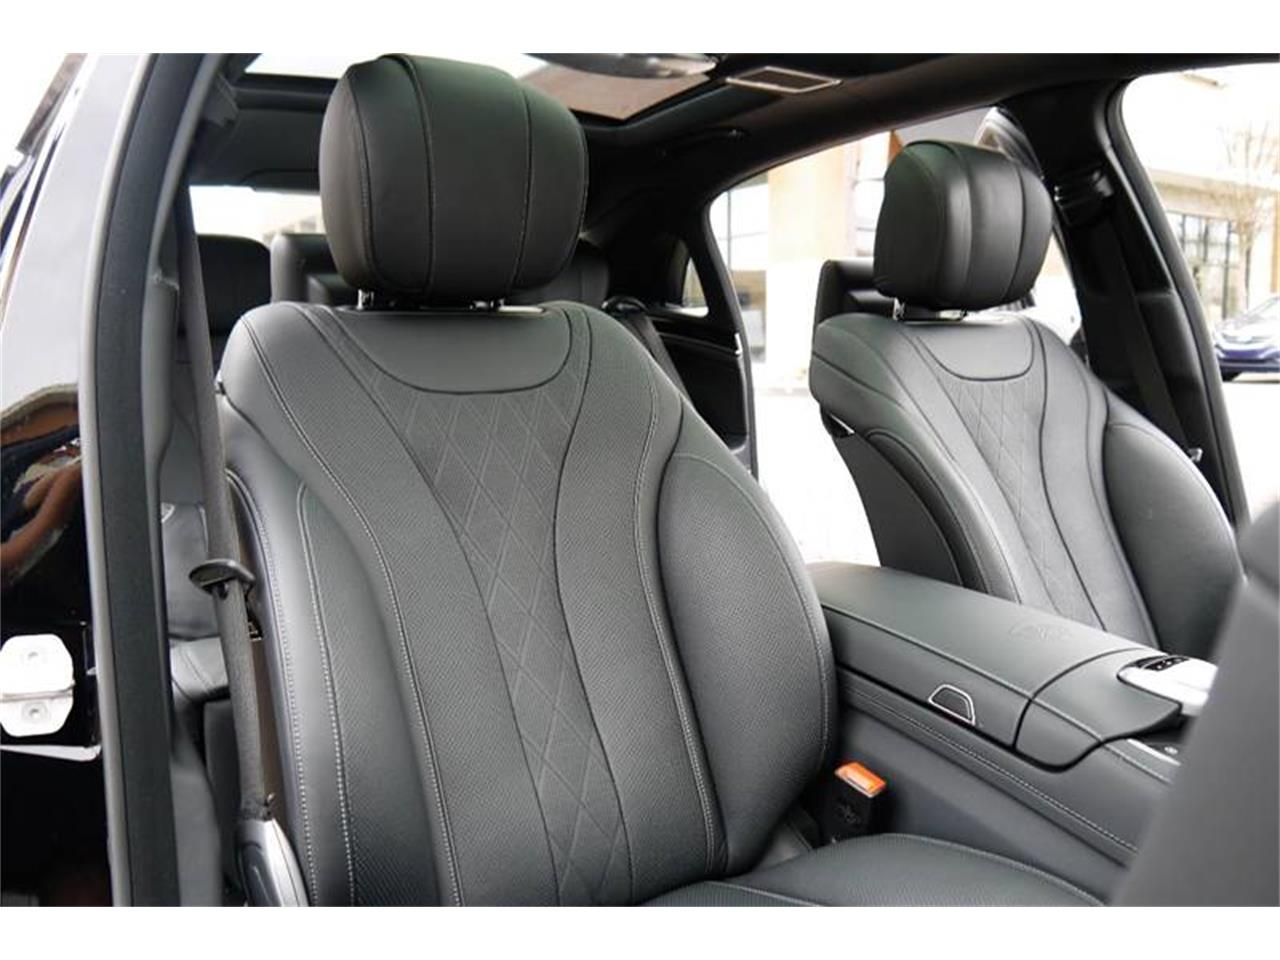 Large Picture of '17 Mercedes-Benz S-Class located in Brentwood Tennessee - $169,000.00 Offered by Arde Motorcars - MOD1